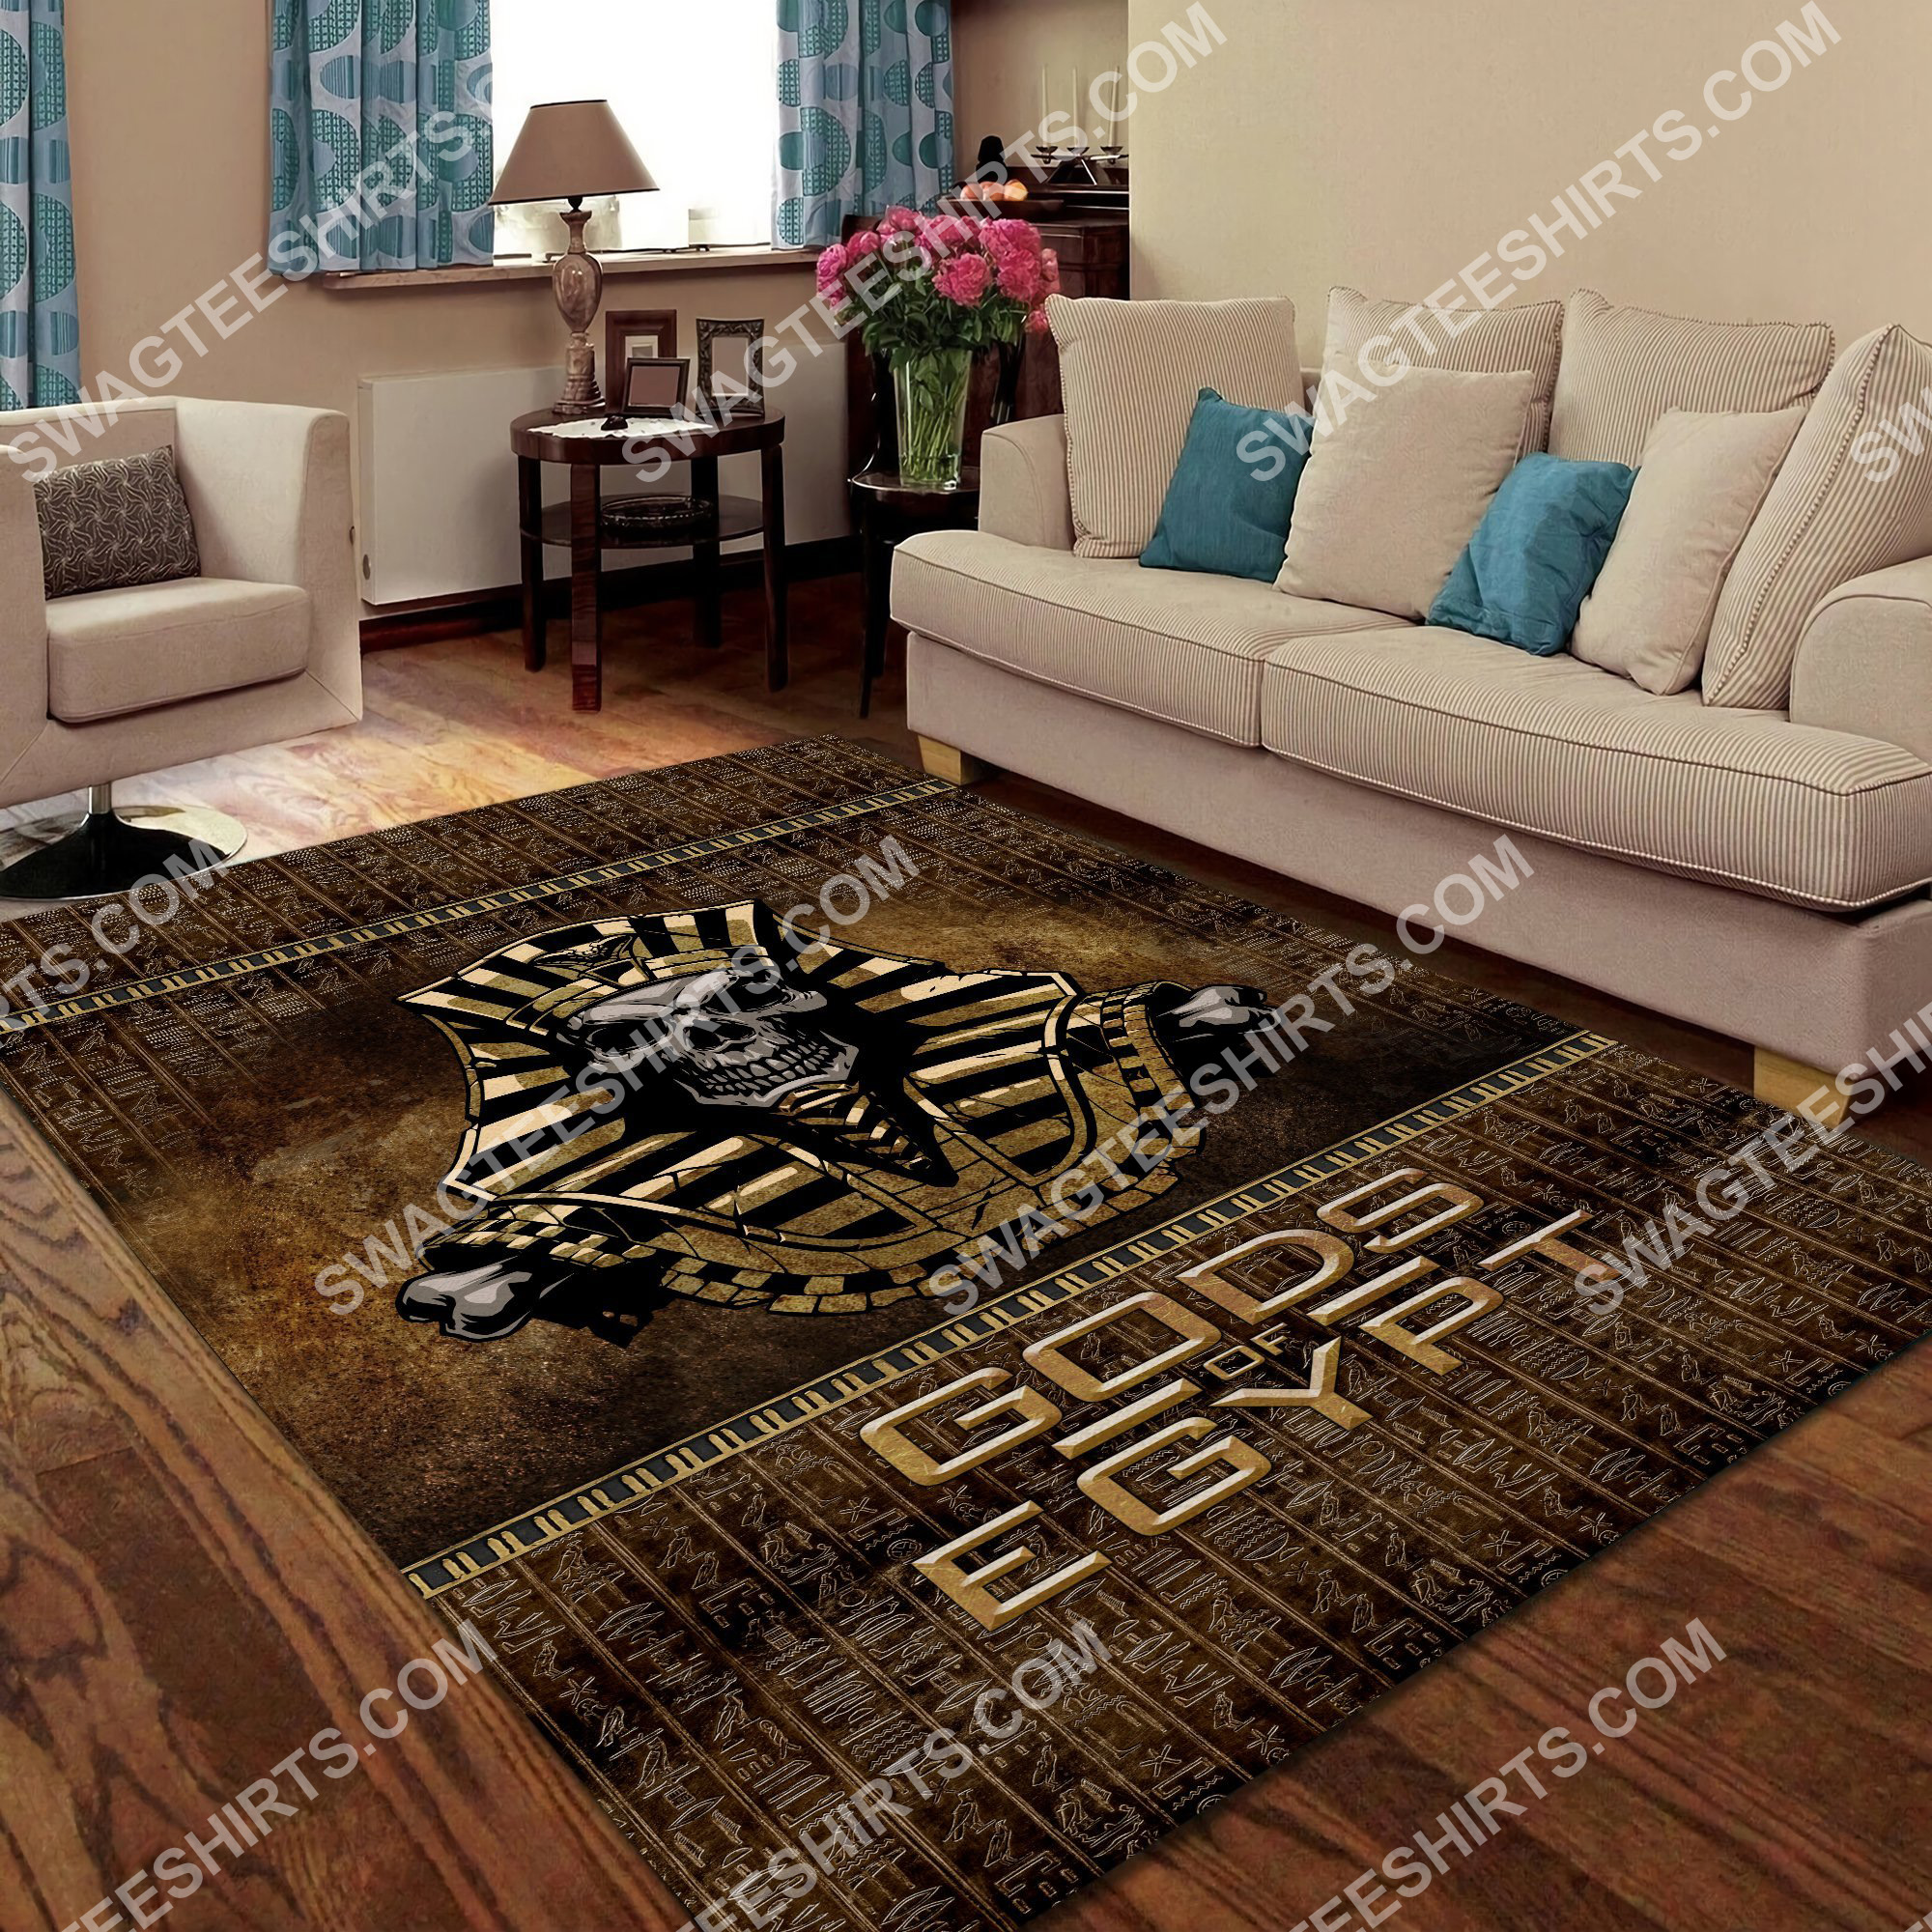 the skull Gods of egypt culture all over printed rug 4(1) - Copy